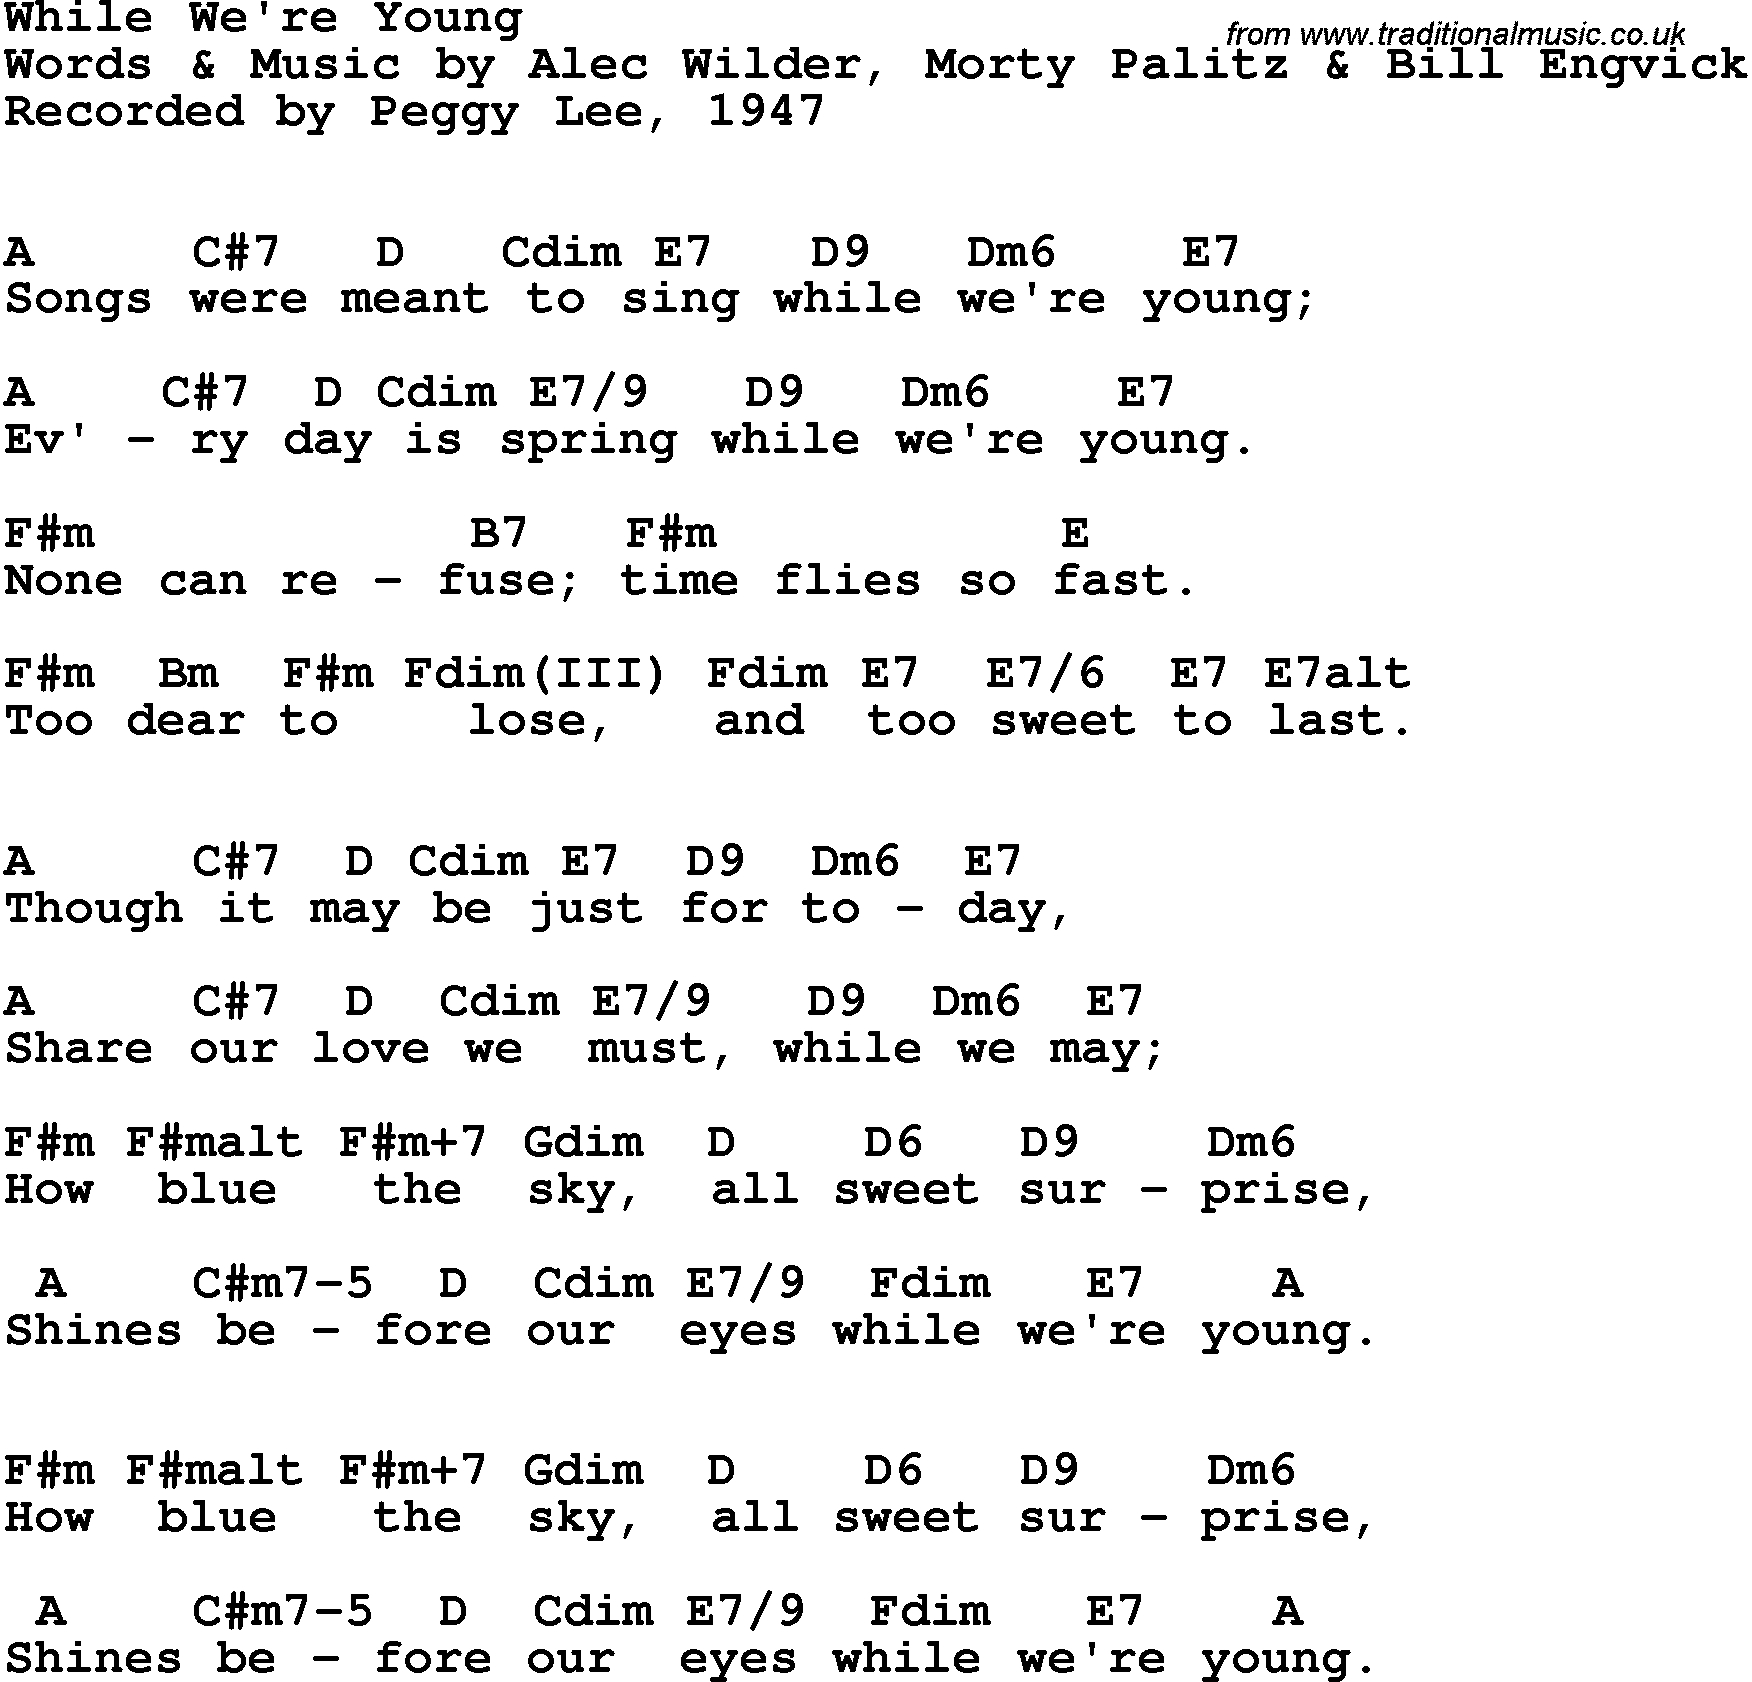 When We Were Young Chords Song Lyrics With Guitar Chords For While Were Young Peggy Lee 1947